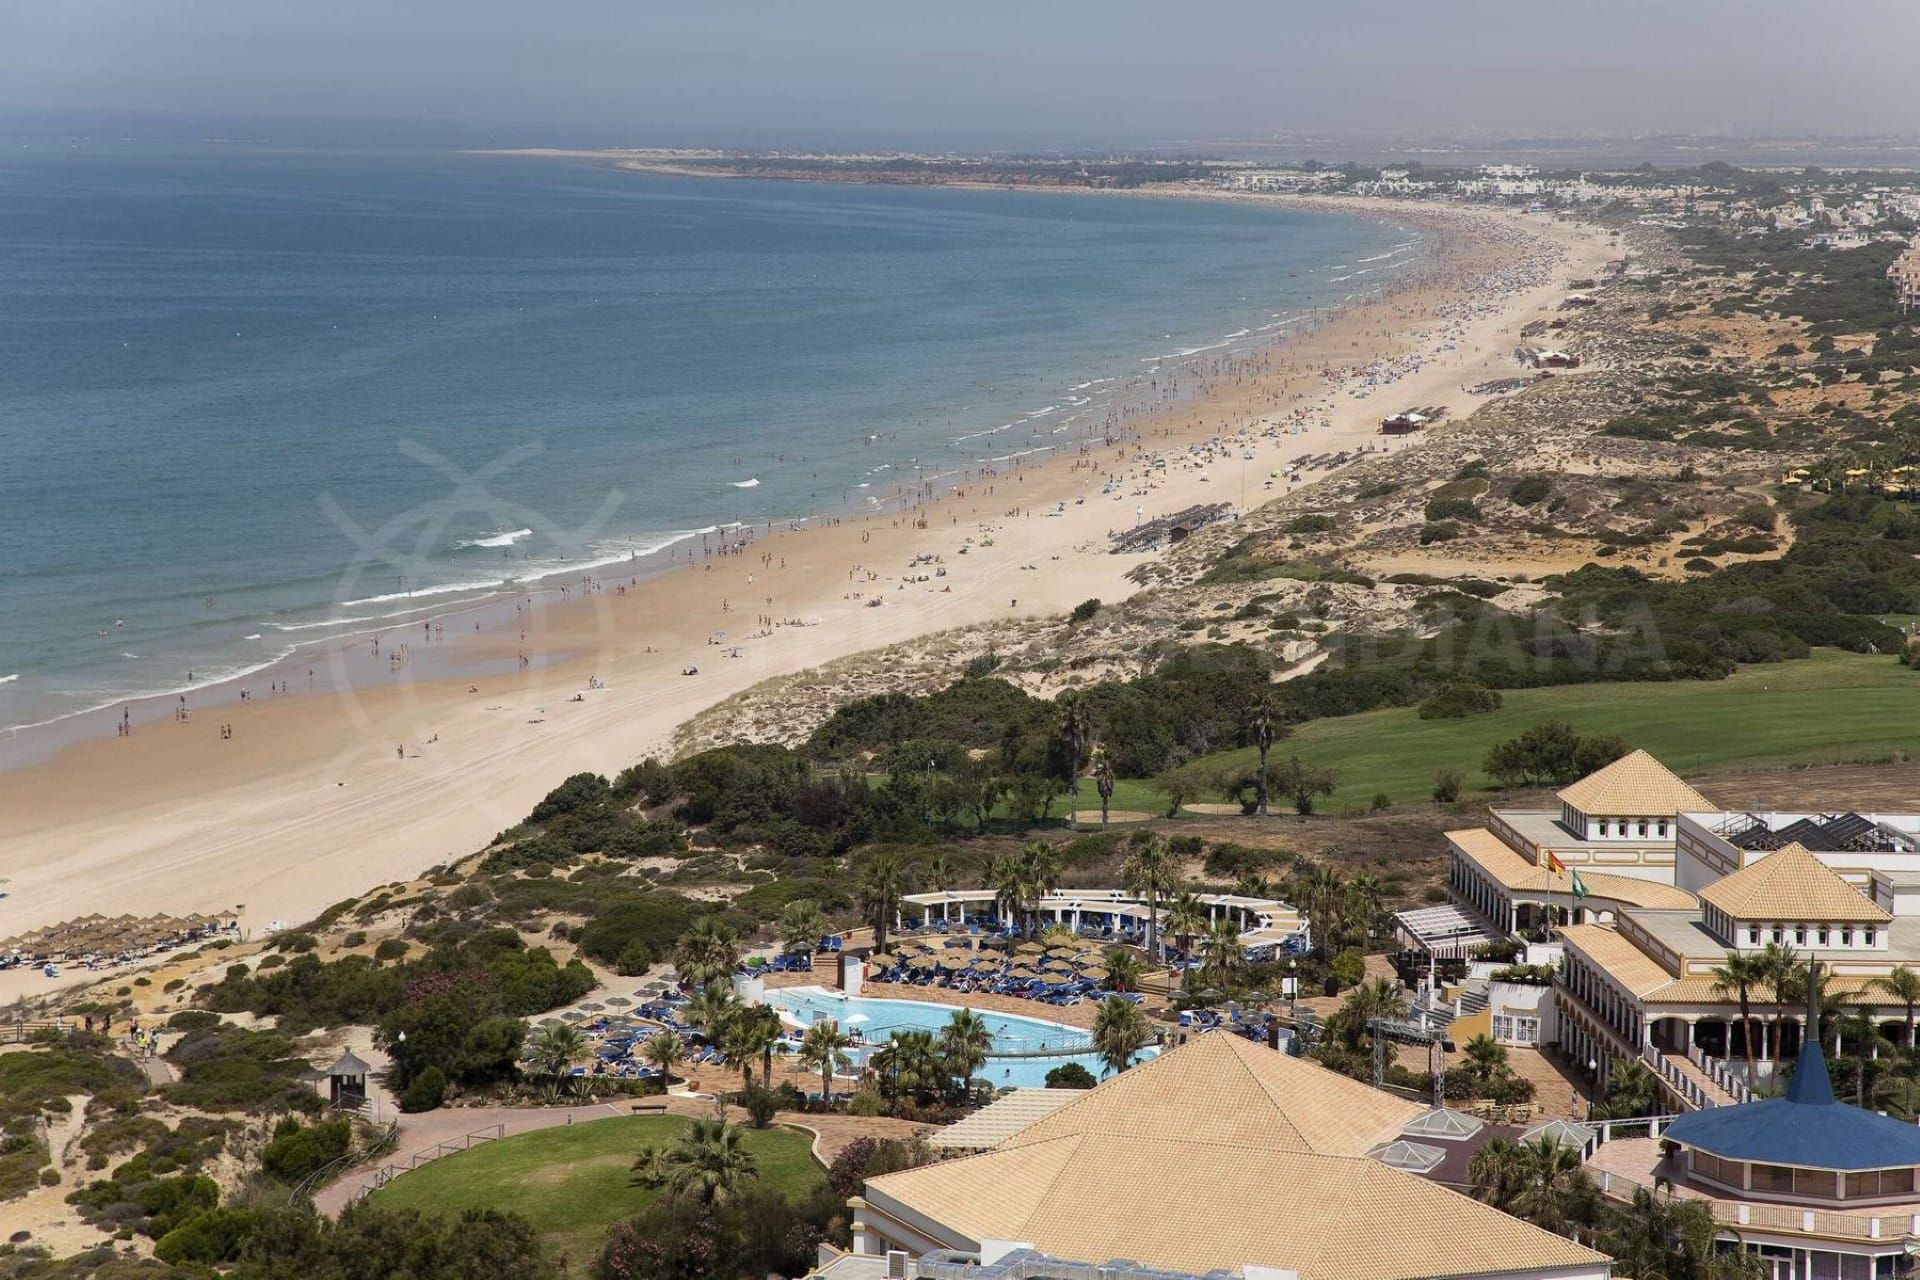 Chiclana, La Barrosa